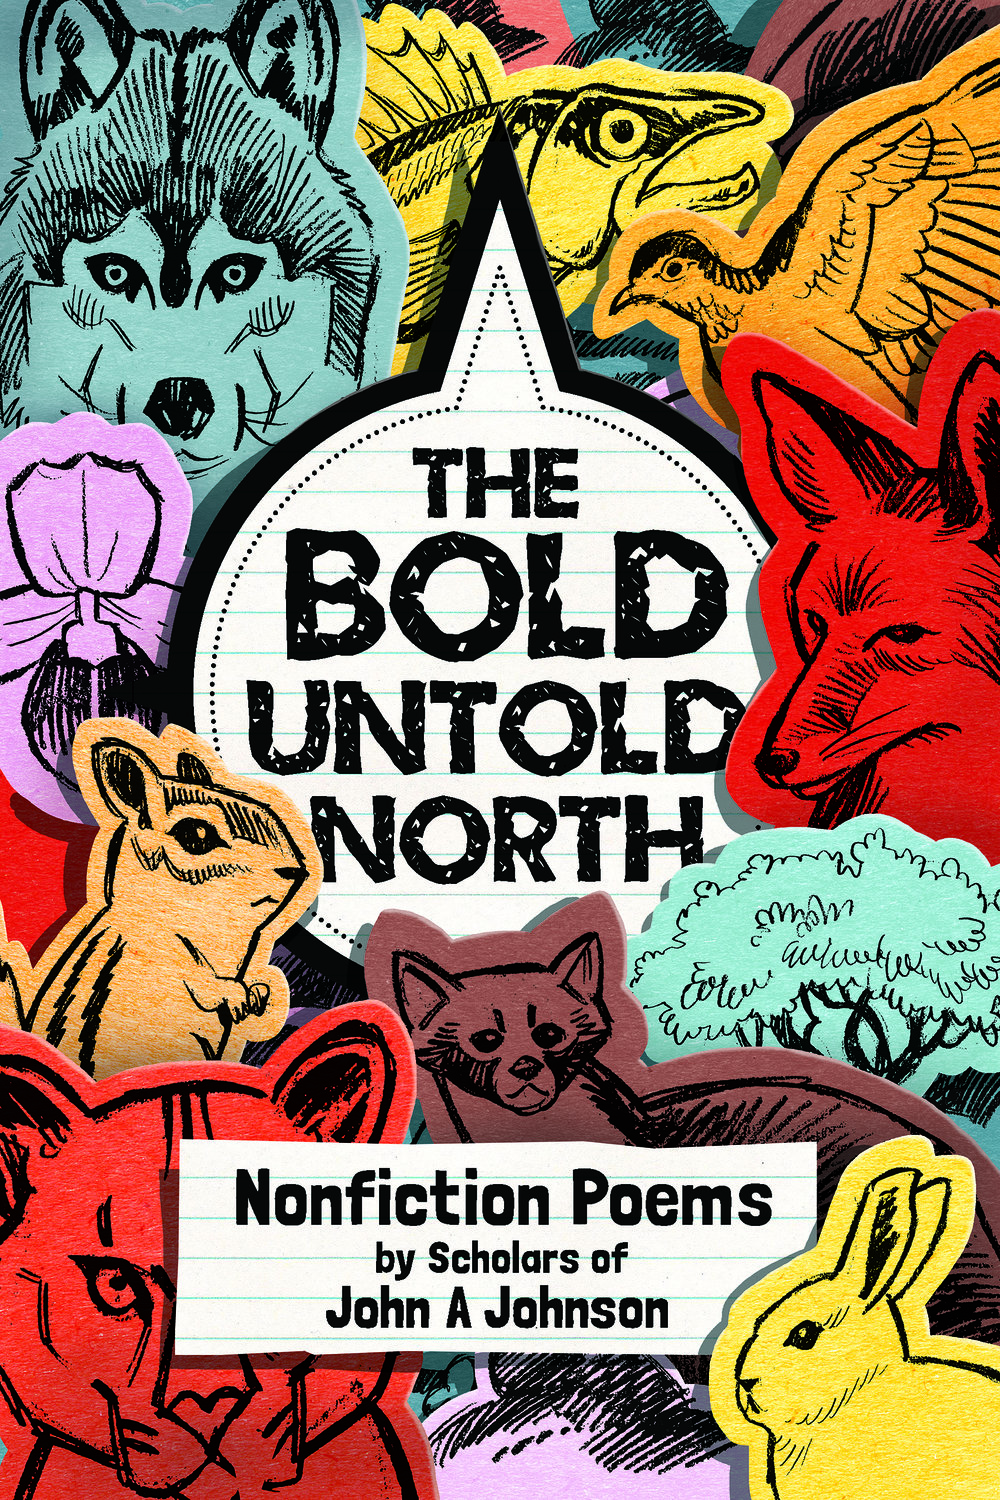 The Bold, Untold North: Nonfiction Poems by Scholars of John A. Johnson - Explore the wilderness of Minnesota in this collection of nonfiction poetry by fifth-grade scholars from John A. Johnson Achievement Plus Elementary school that travels across the entire state with ease. This anthology explores a chipmunk's favorite food, compares mountain lions to fades, and imagines badgers as sneaky tricksters. In addition, this year, there are six hours of lesson plans so students across the nation can create their own wild, wonderful verses. With a foreword by local award-winning poet Danez Smith and book cover by Kevin Cannon. Published in 2018. Click here for the educator resources featured in the book.